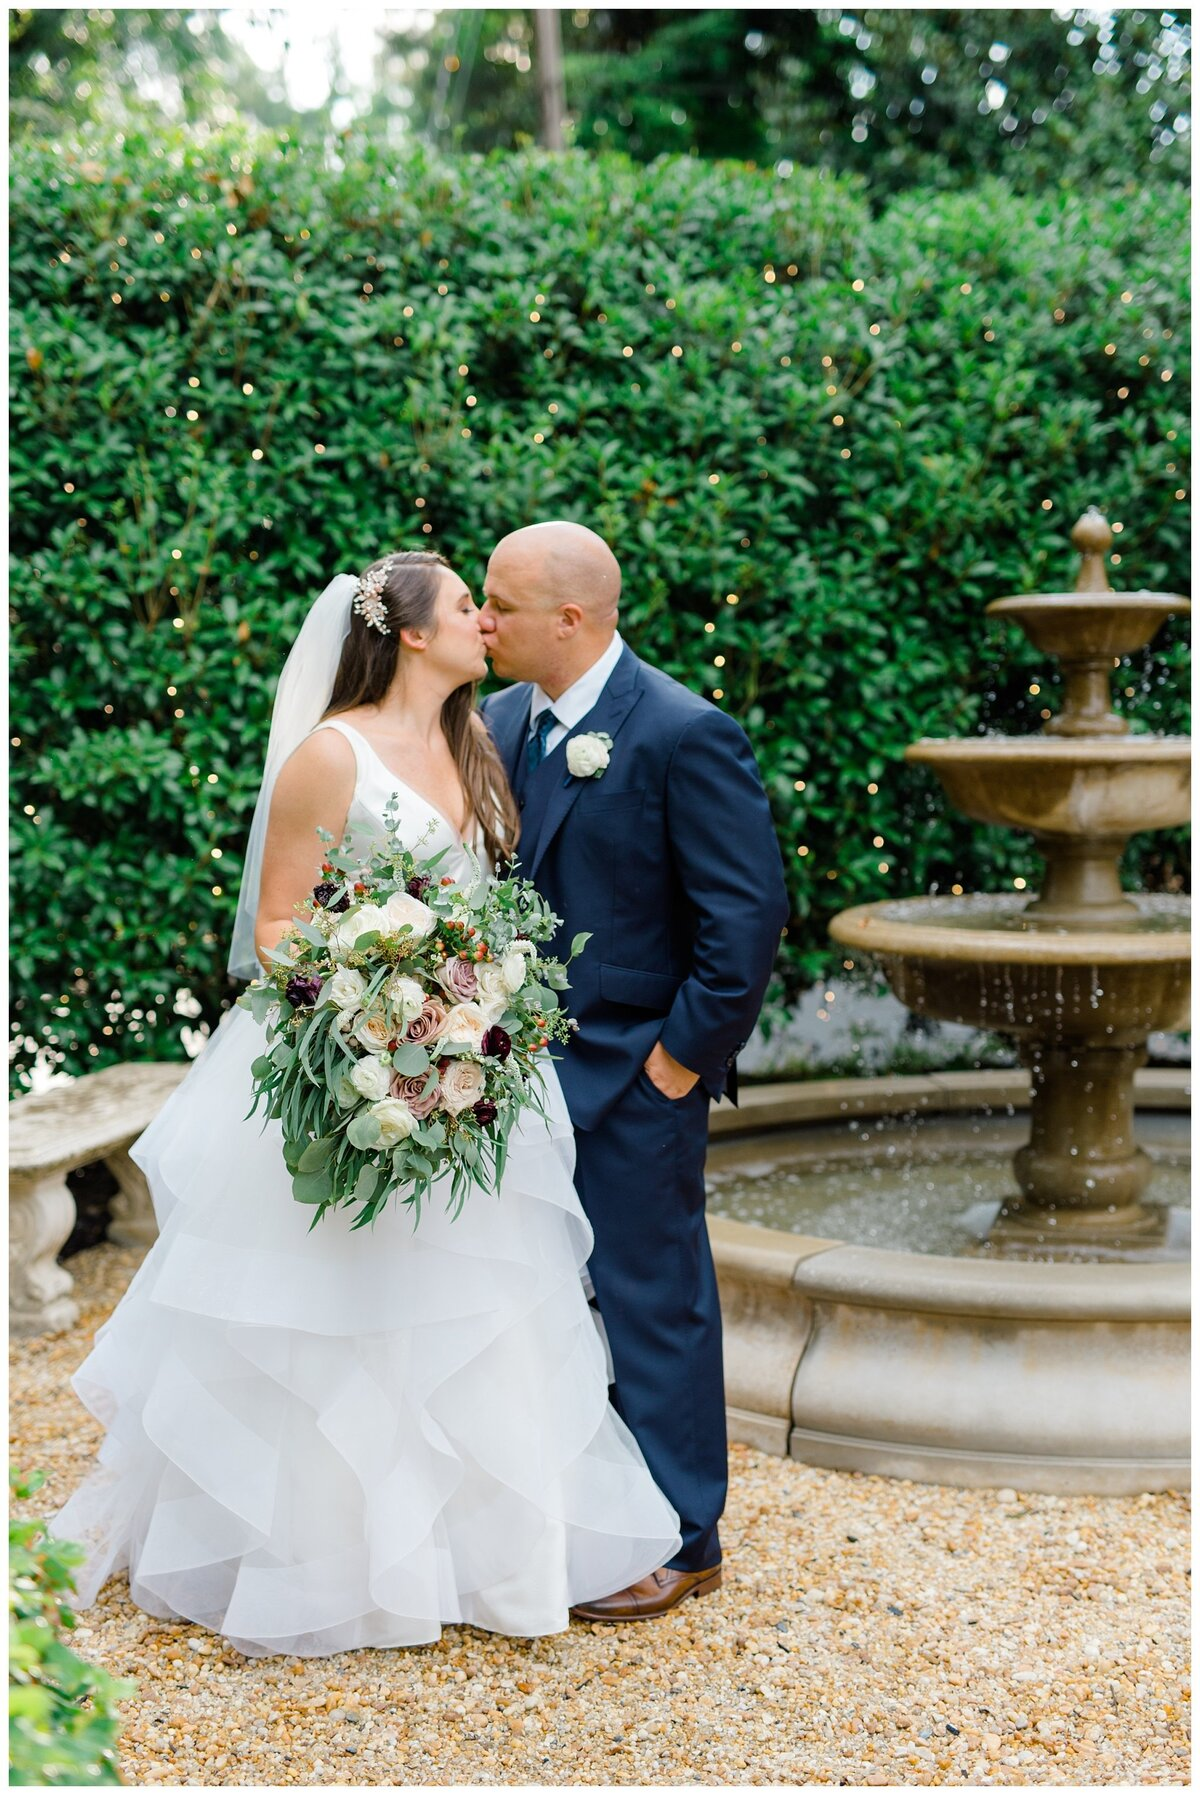 harkins-wedding-atlanta-georgia-photographer-54